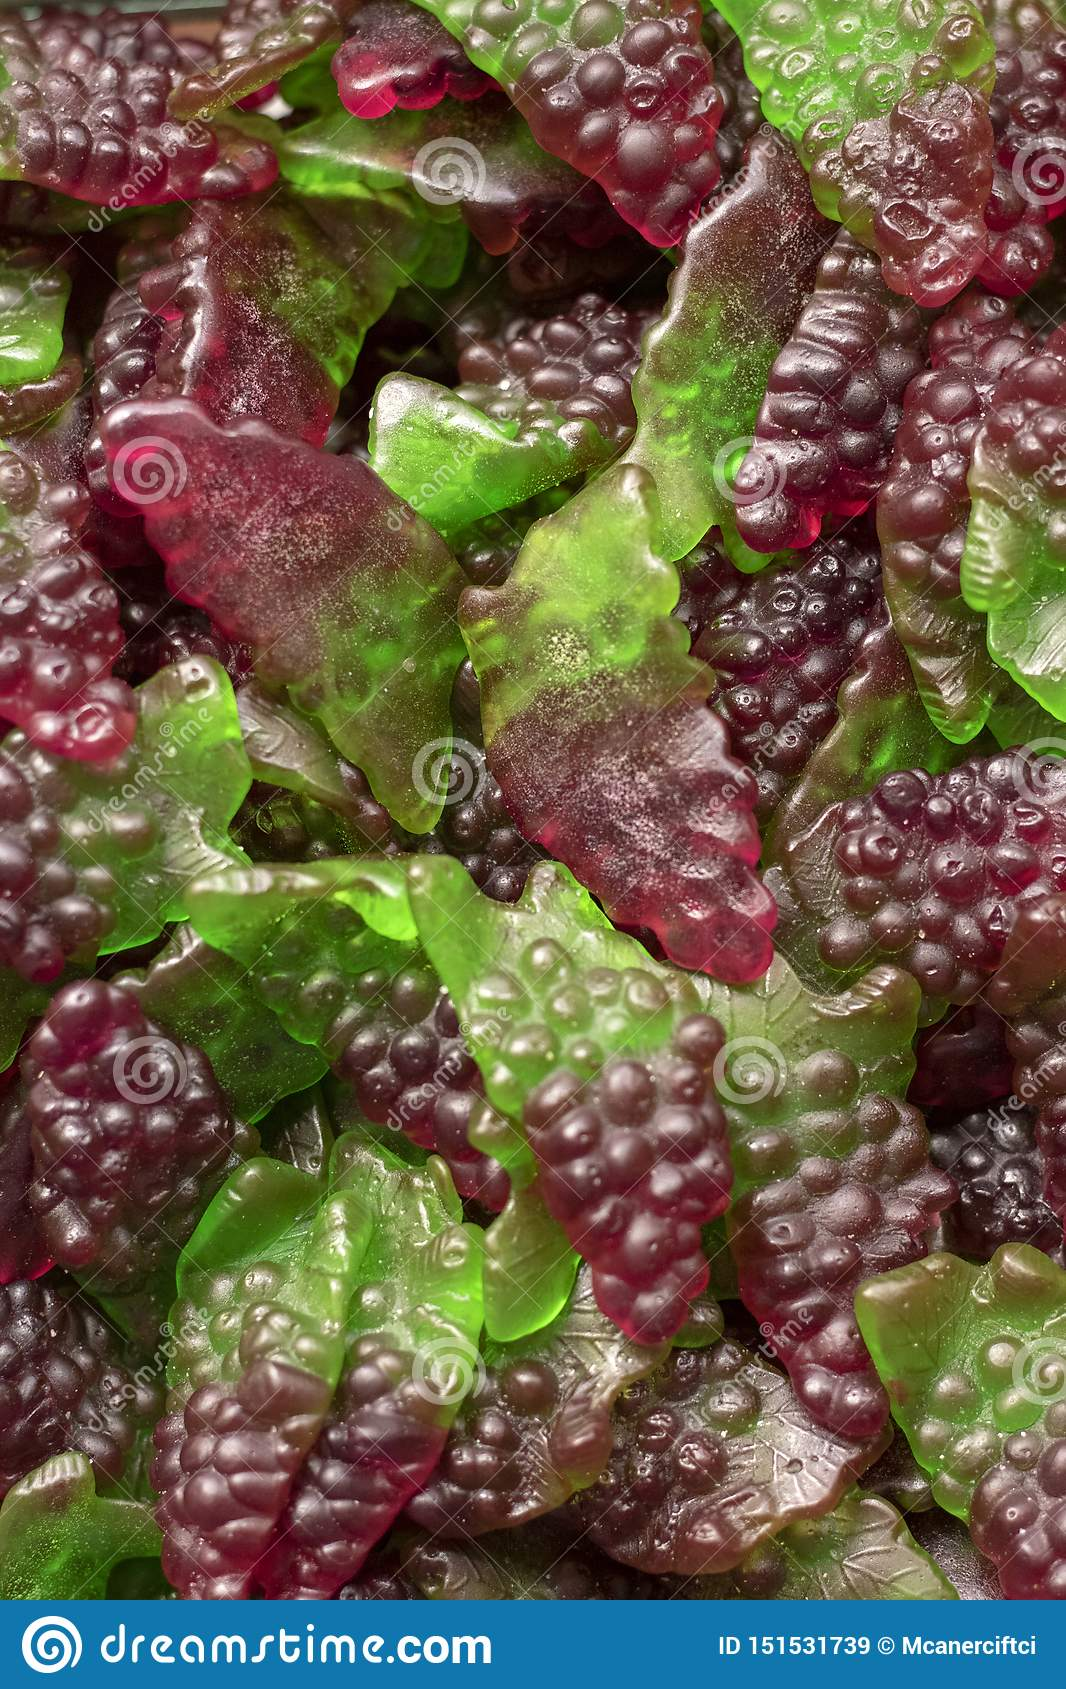 Jelly beans in green and red color. Close-up shot of front of store